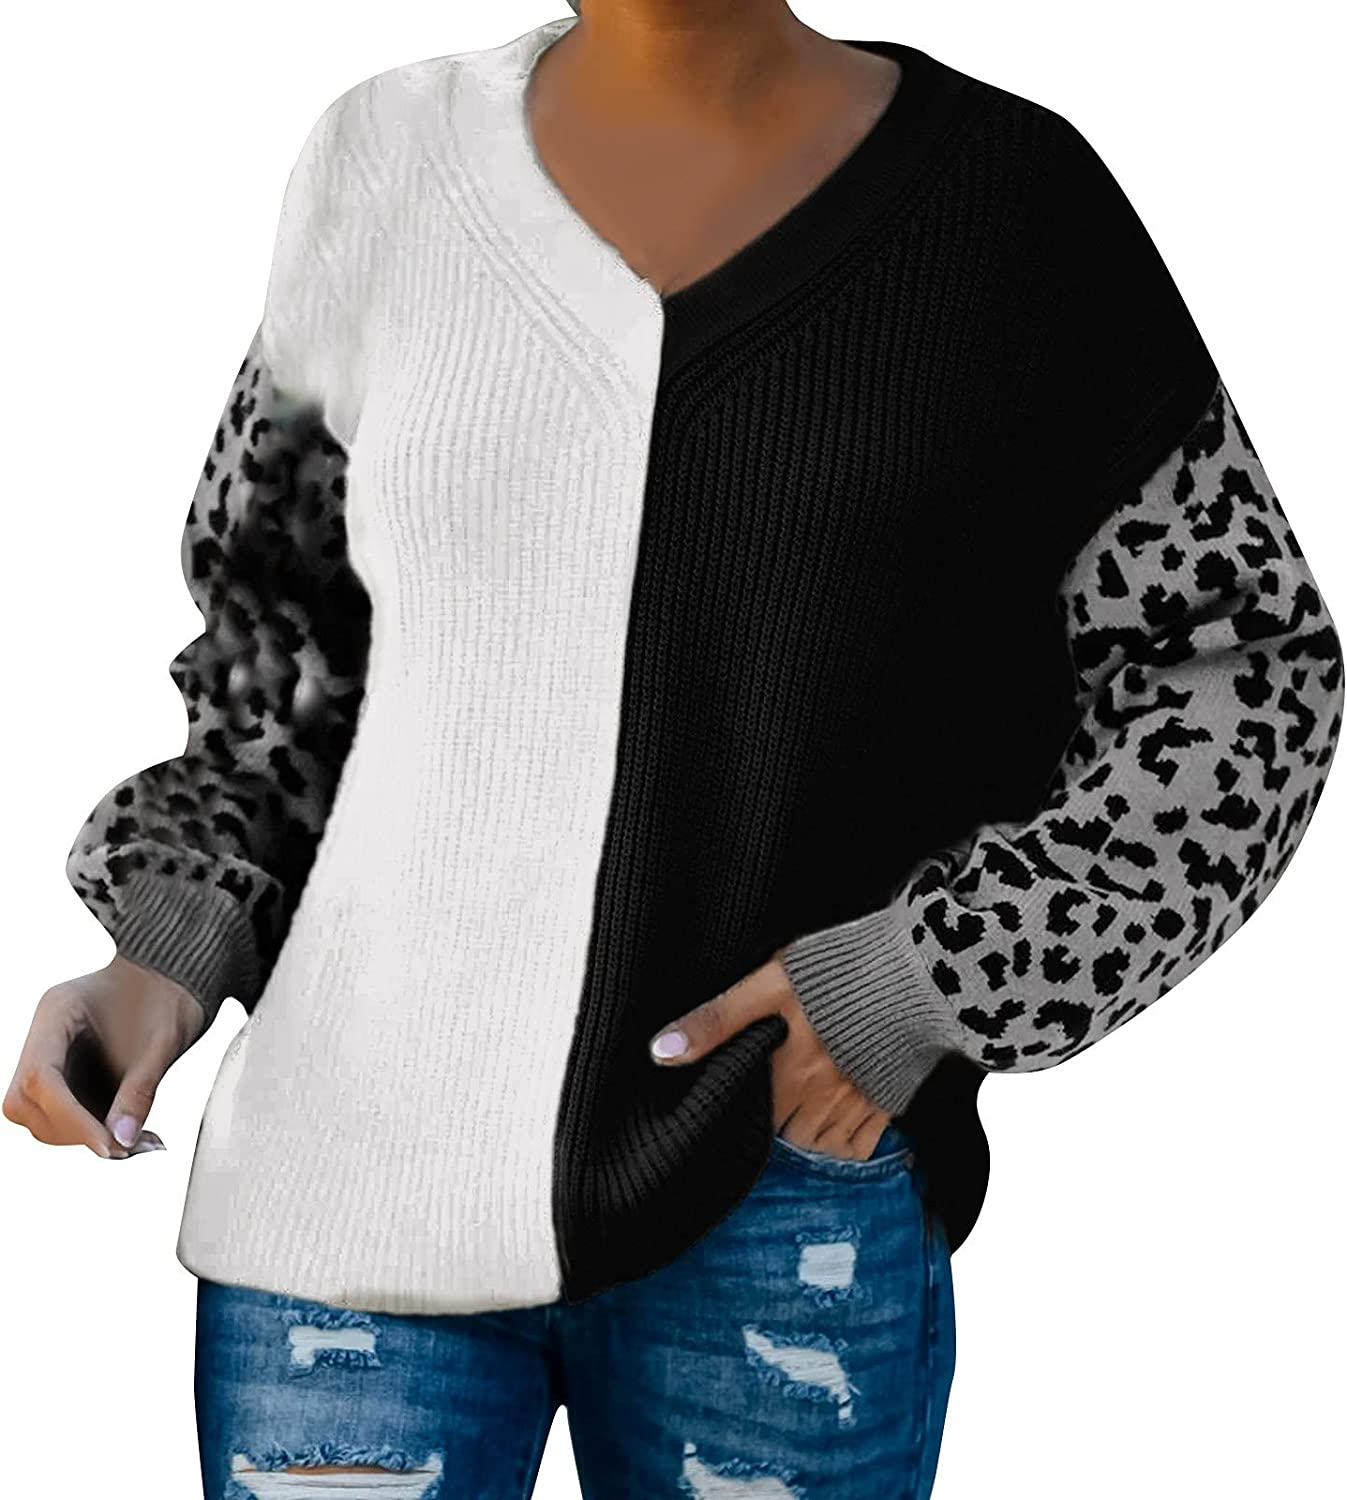 VonVonCo Fashion Pullover Sweaters for Women Casual V-Neck Knitted Splice Leopard Print Blouses Sweater Tops